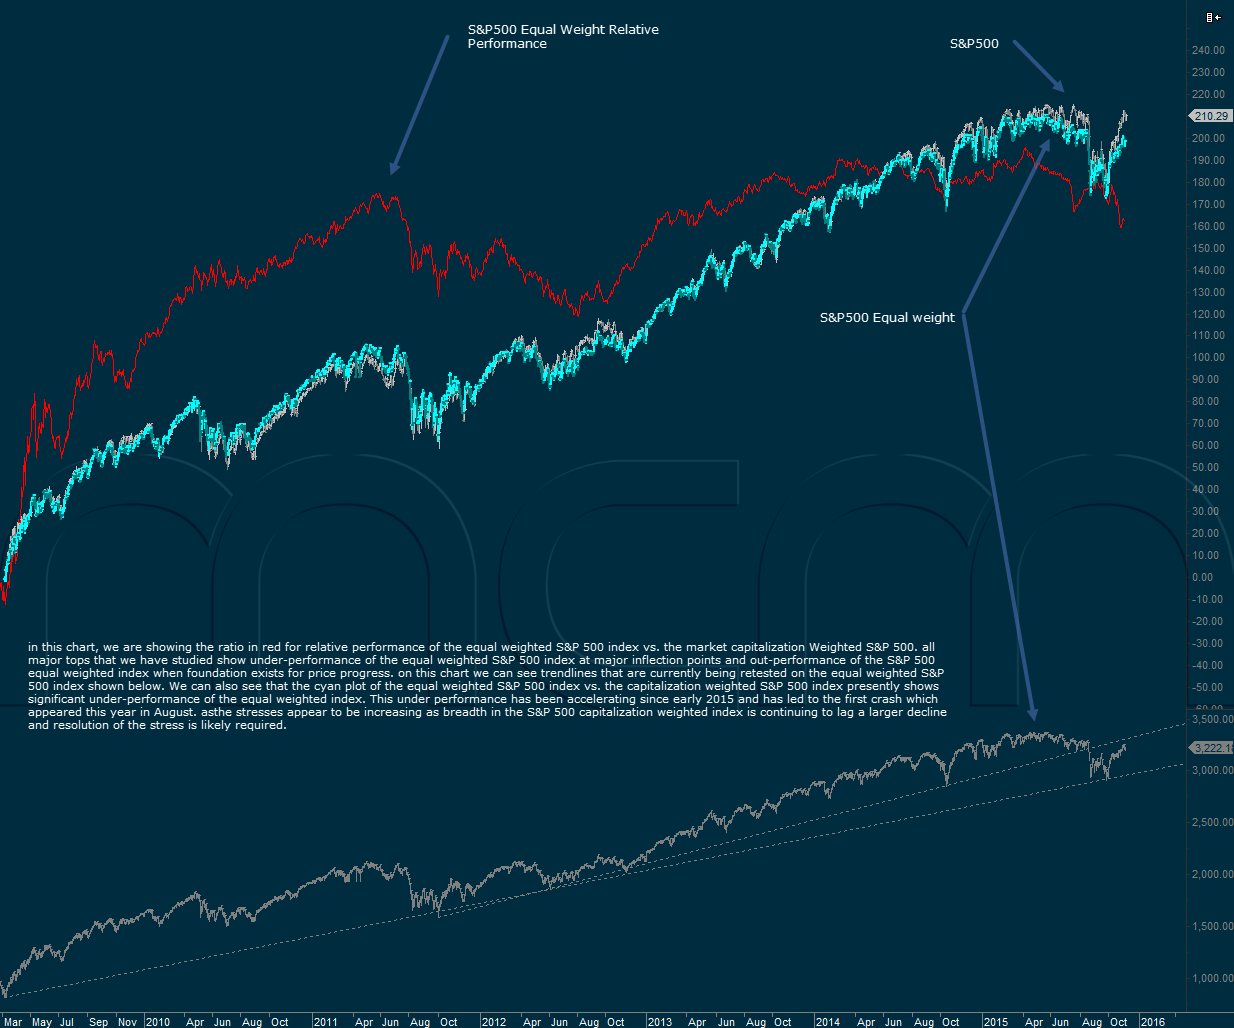 S&P 500 Index - equal weight vs. capitalization weight performance